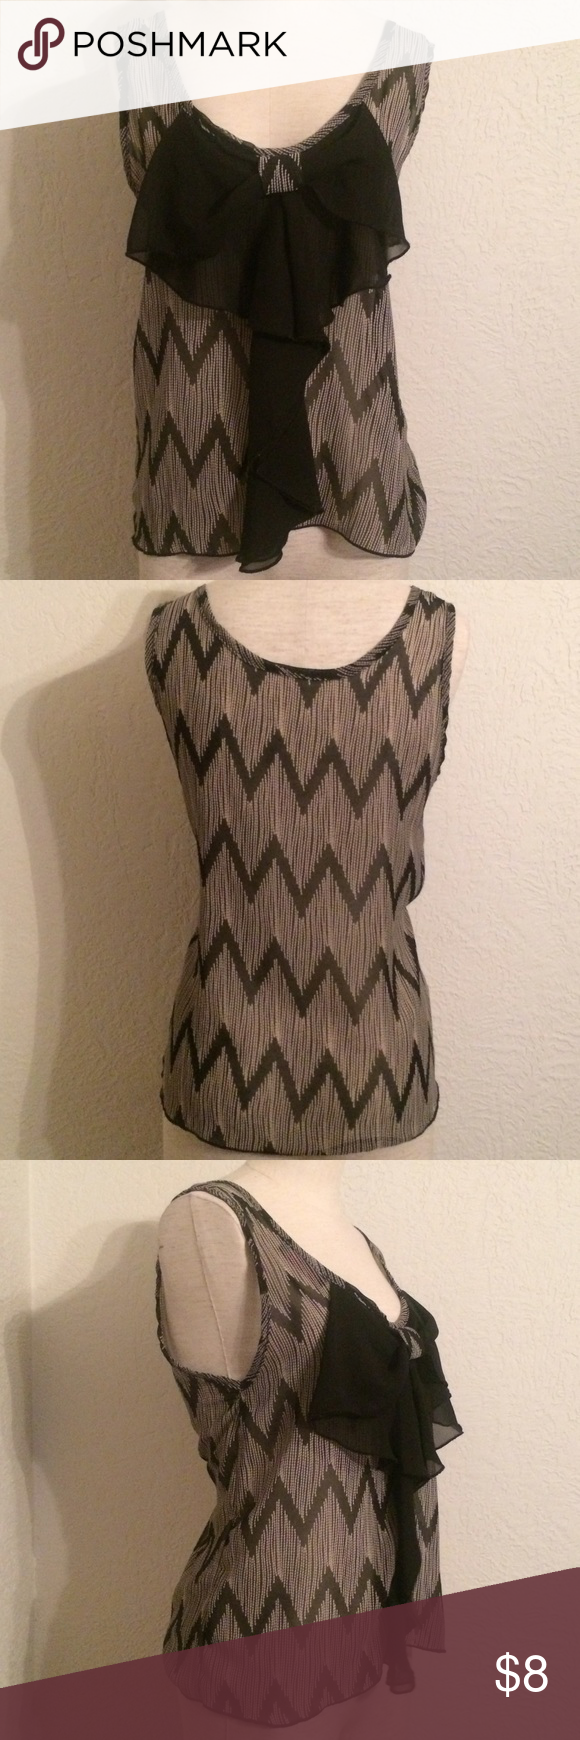 Body Central top shirt blouse Body Central top shirt blouse SZ M Body Central  Tops Blouses